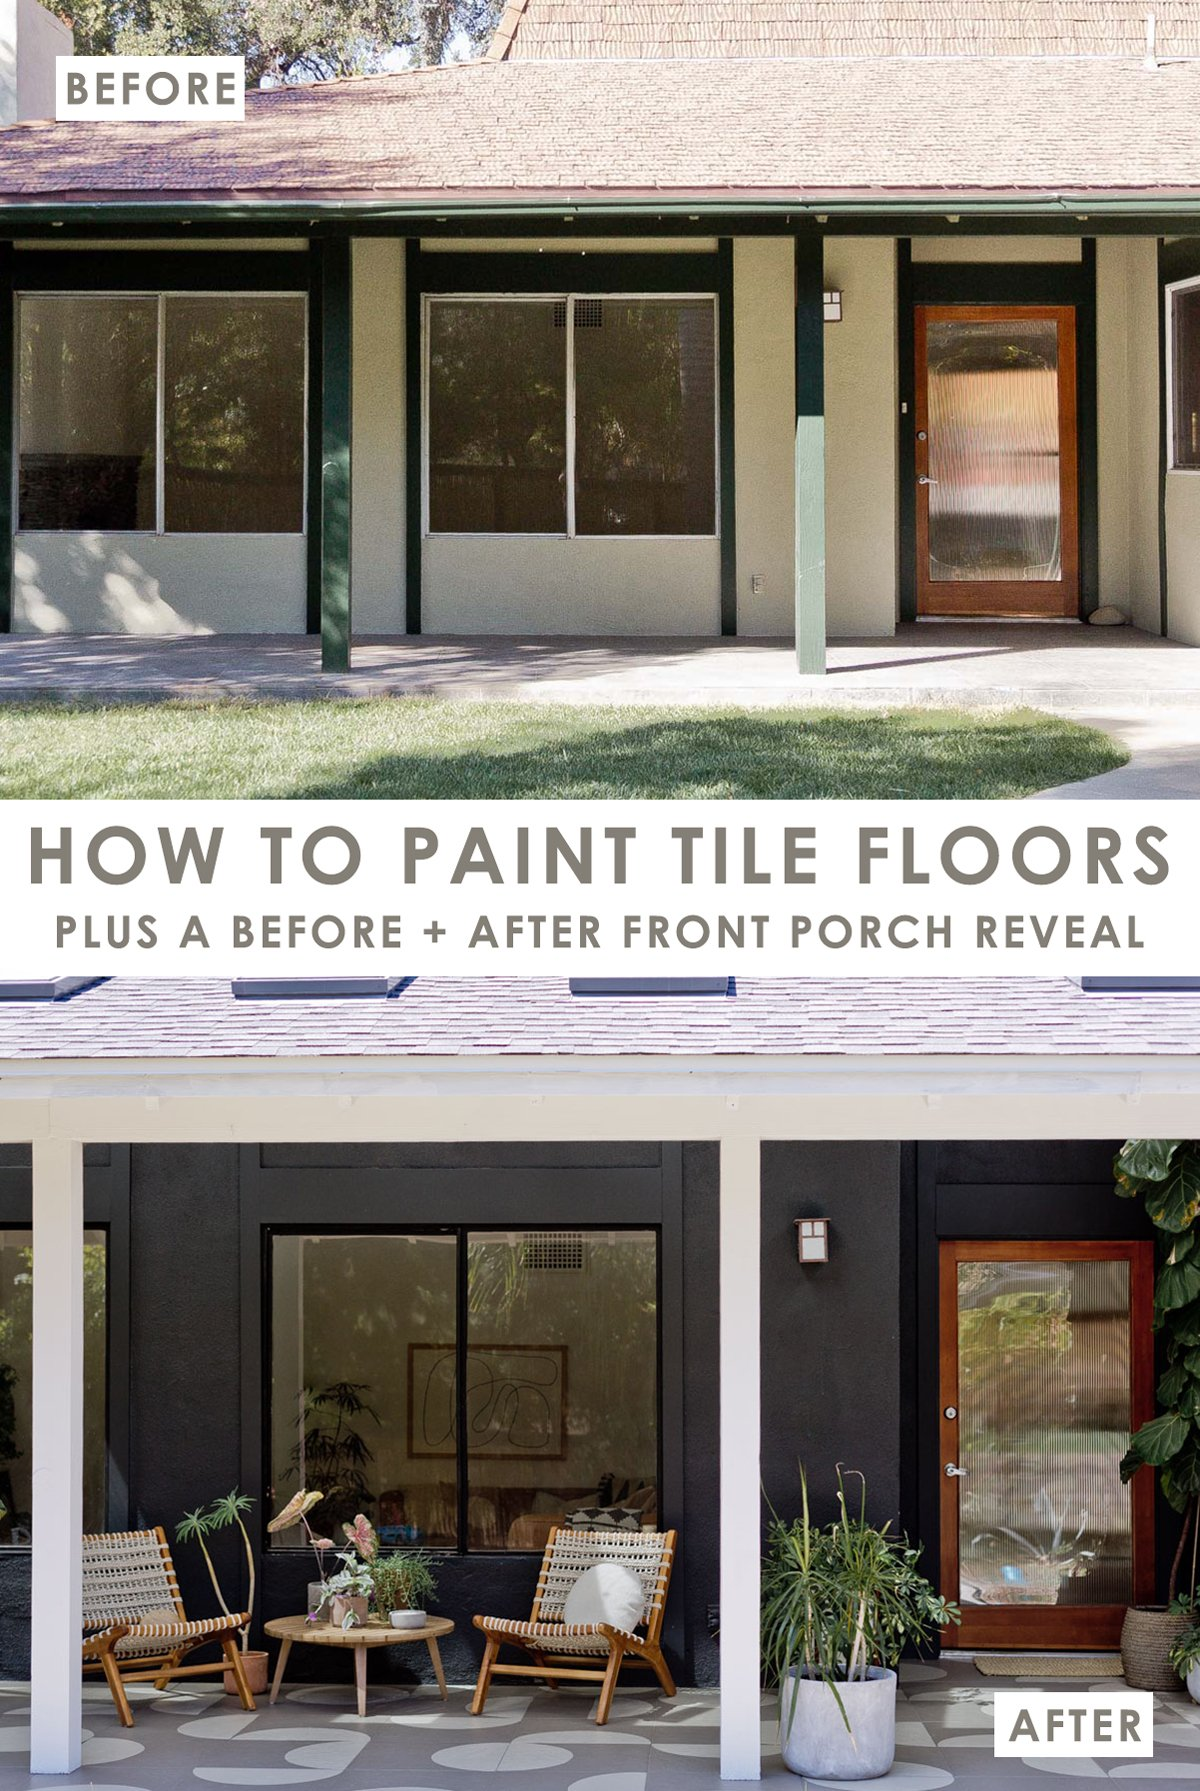 Before and after photos of front porch makeover with painted tile floors